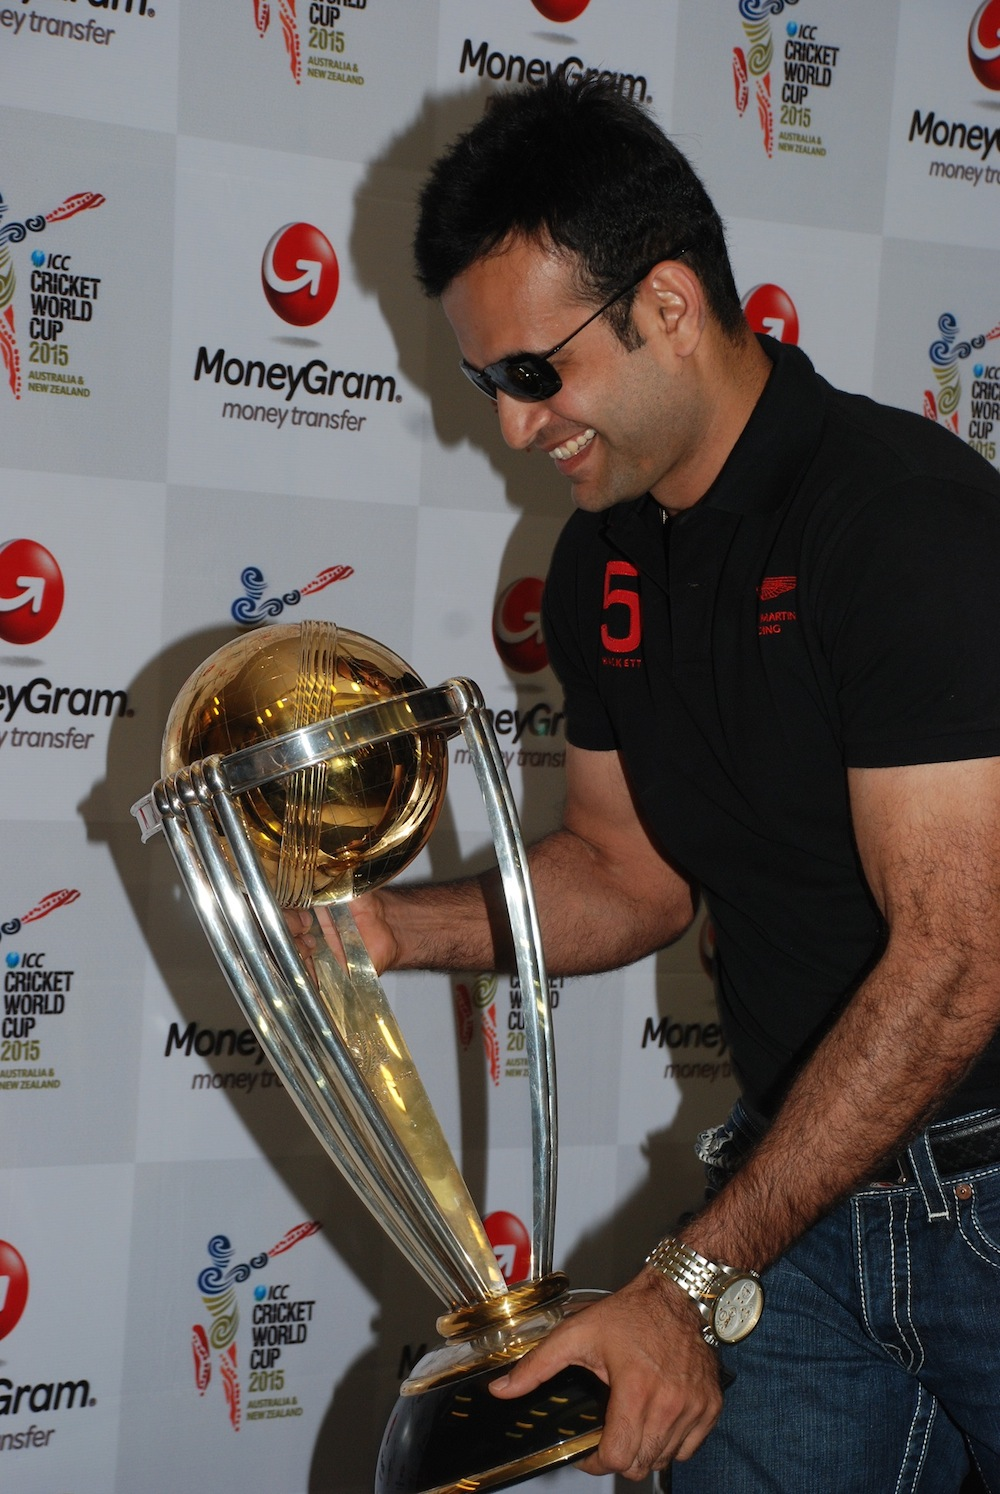 MoneyGram partners WOOT Factor for 6-city ICC World Cup Trophy showcase